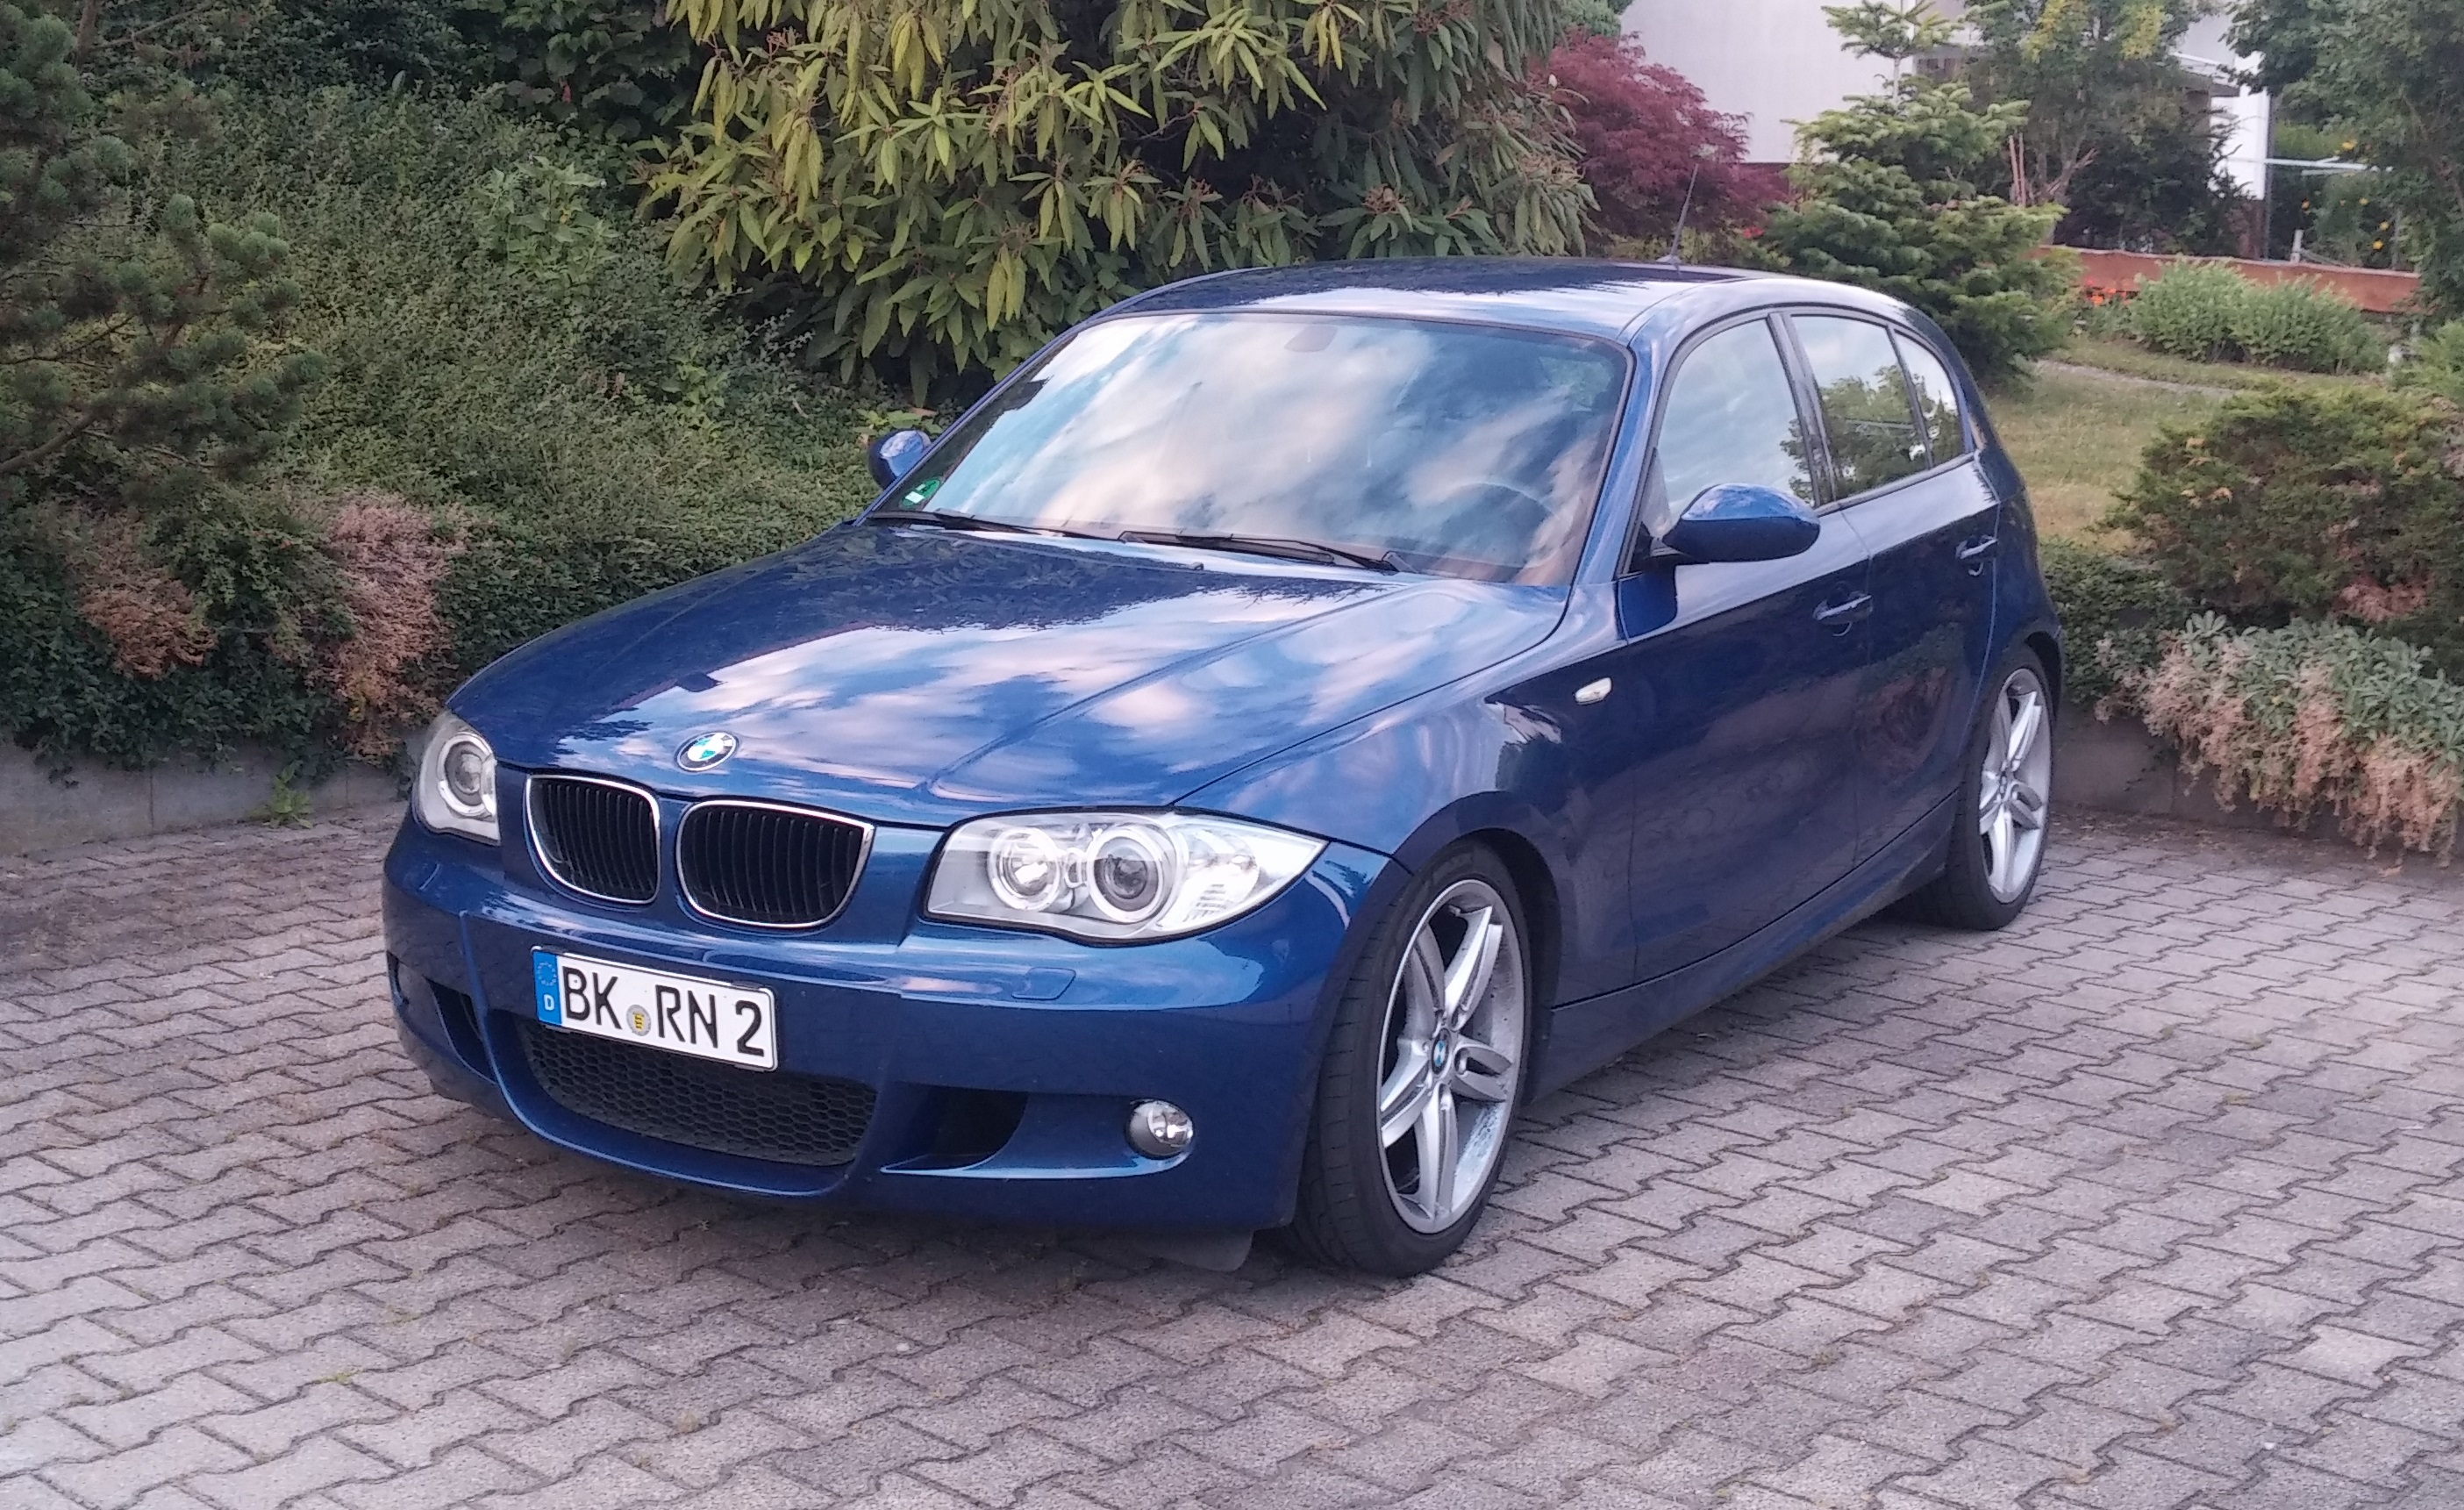 bmw 120i in lemans blau mit m paket xenon klimaautomatik. Black Bedroom Furniture Sets. Home Design Ideas